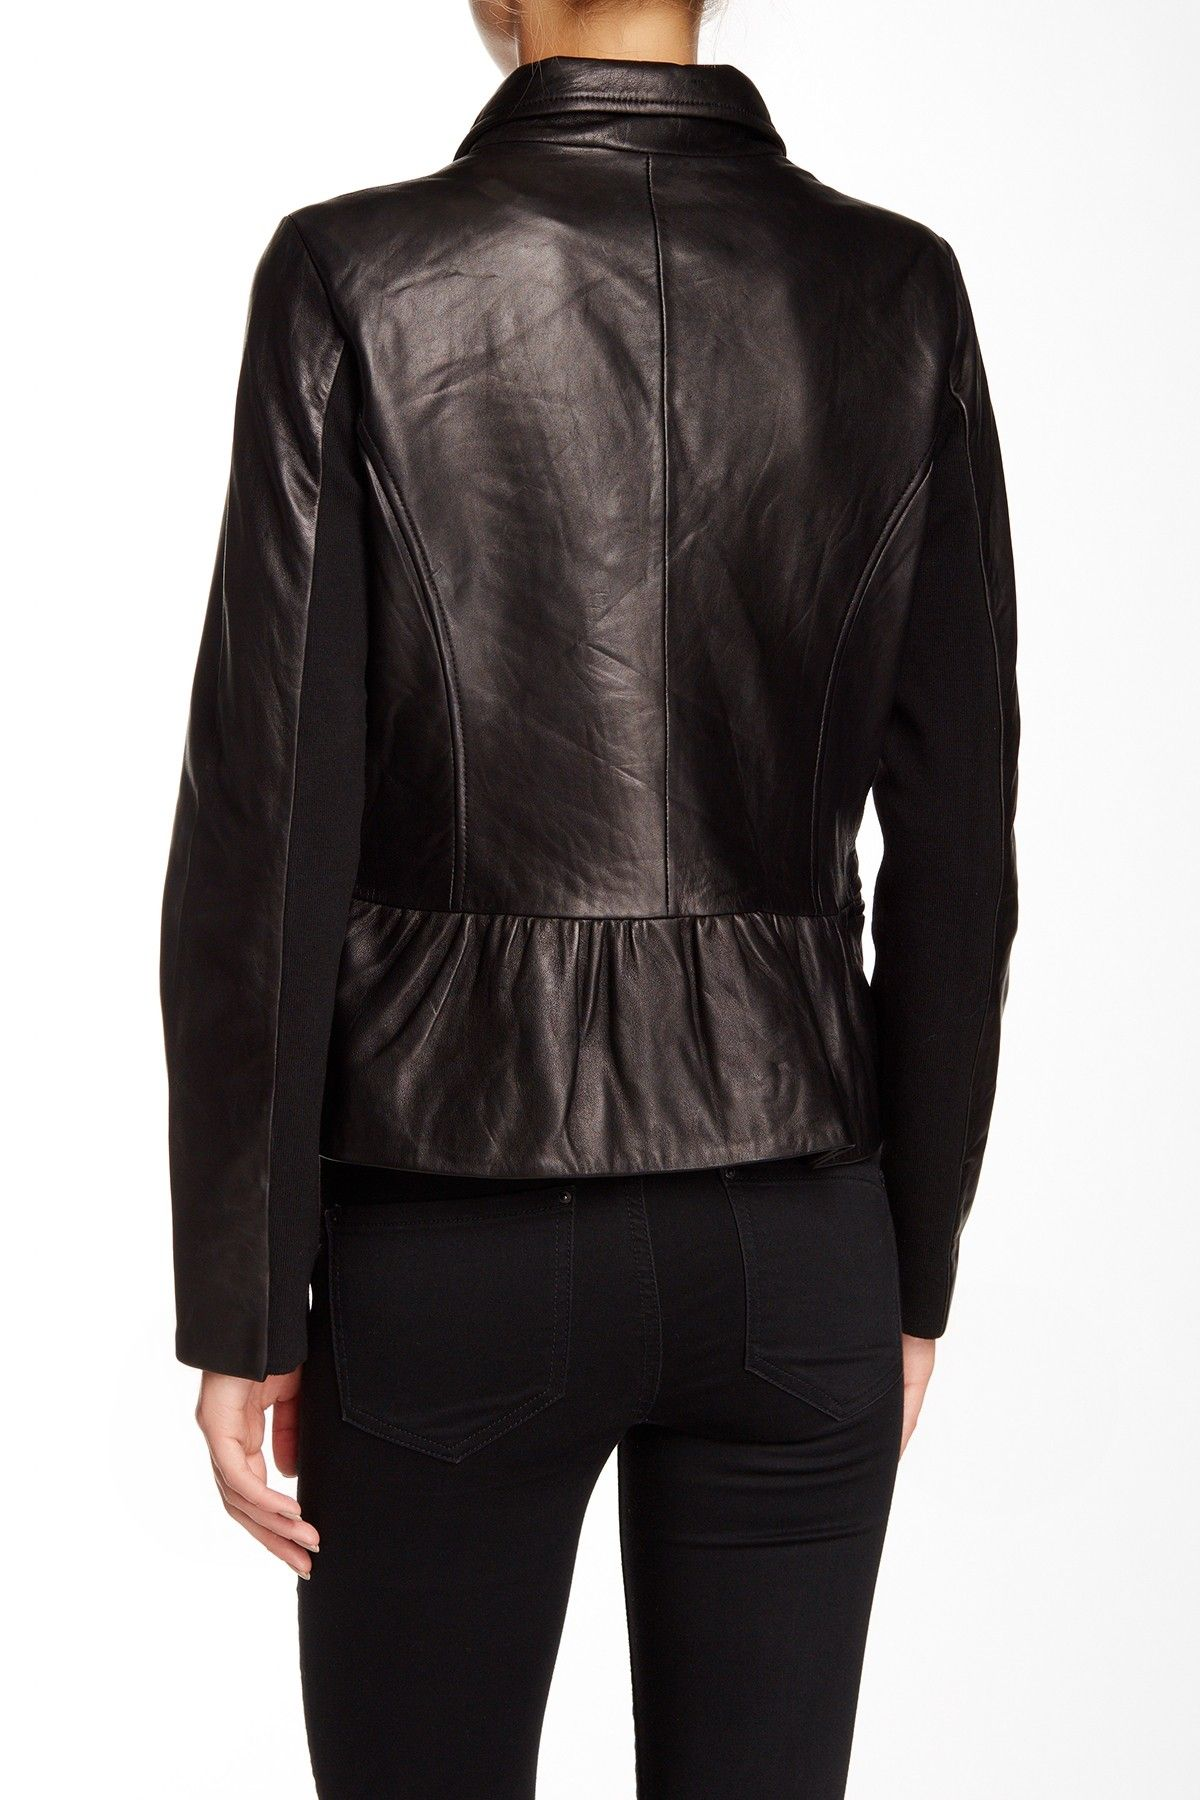 Colette Moto Leather Jacket With Peplum Leather Jacket Jackets Leather Moto Jacket [ 1800 x 1200 Pixel ]